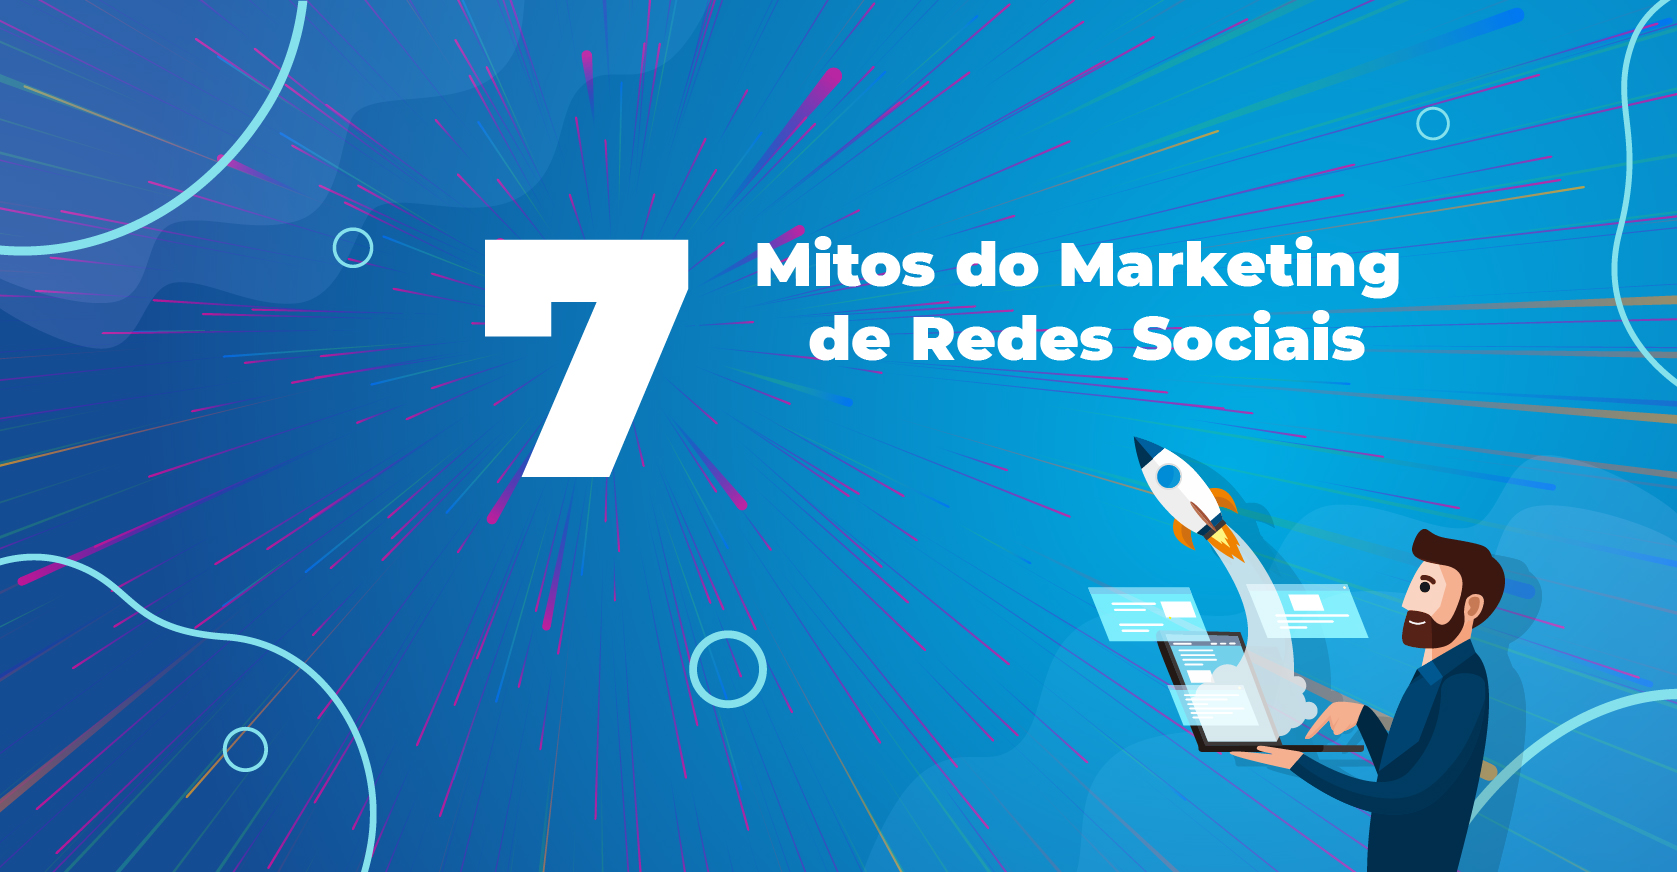 Bemyself_7 mitos marketing redes